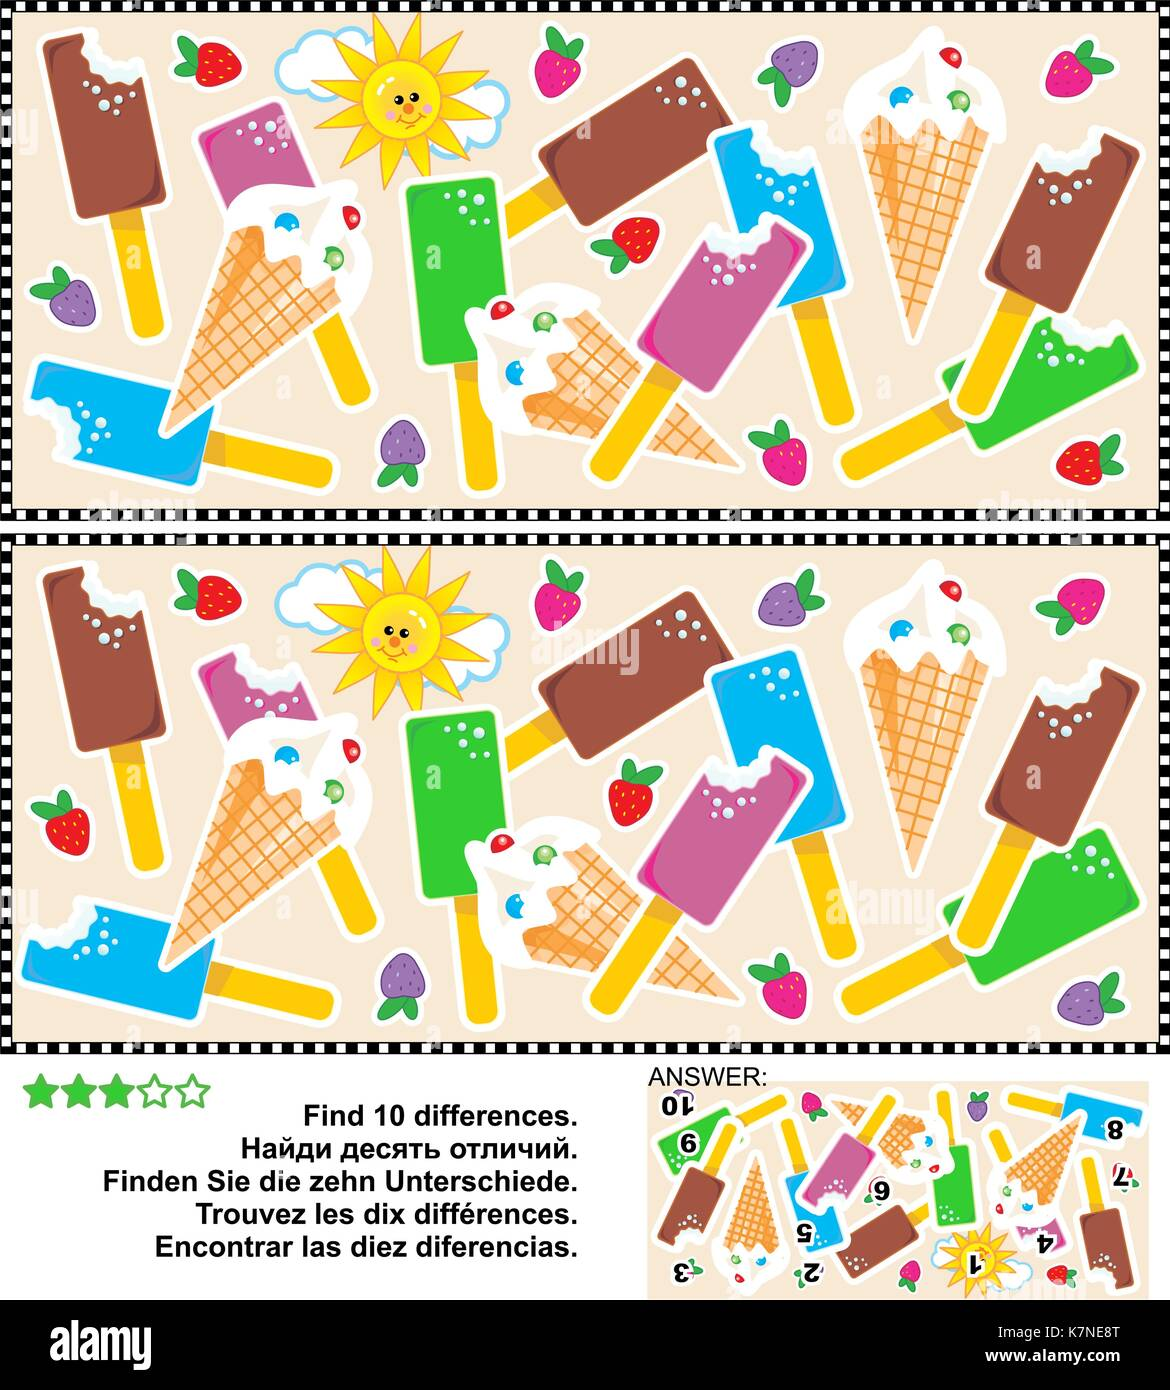 Picture puzzle: Find the ten differences between the two pictures of yummy ice cream bars and cones. Answer included. - Stock Image